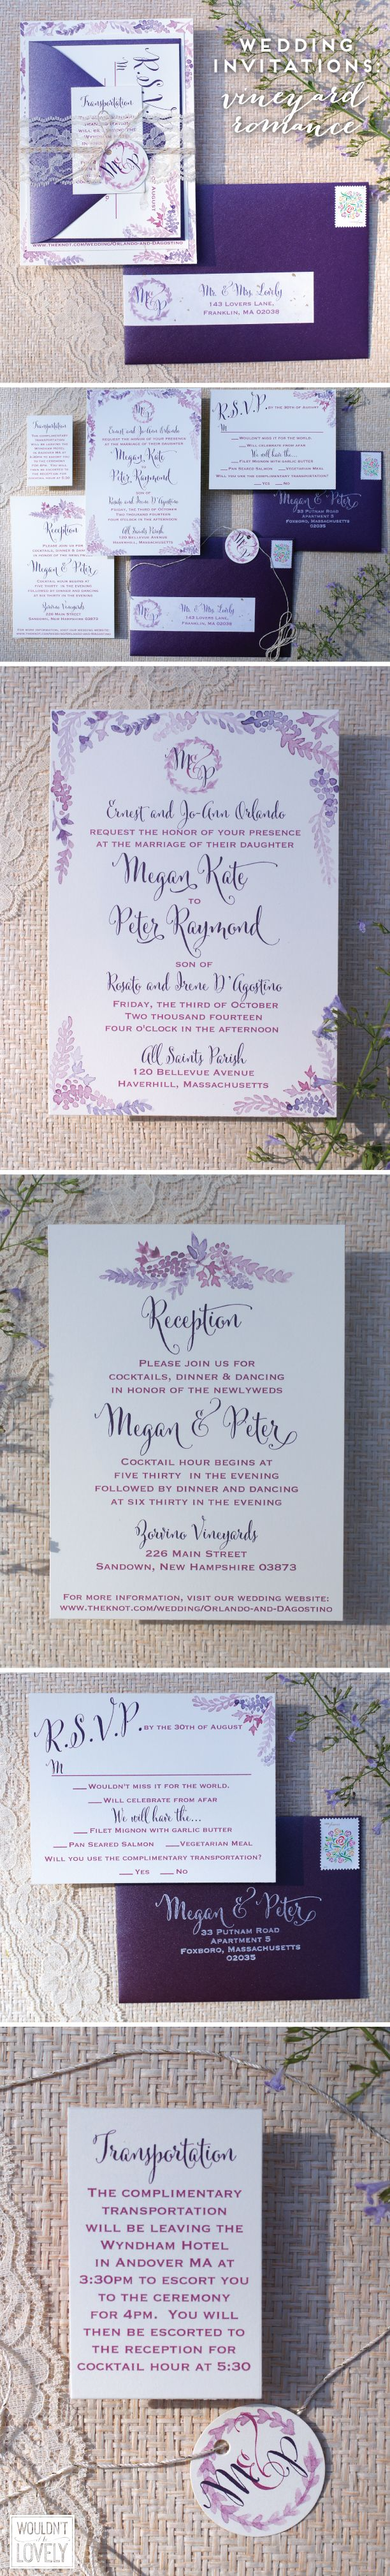 Romantic Vineyard Wedding Invitations